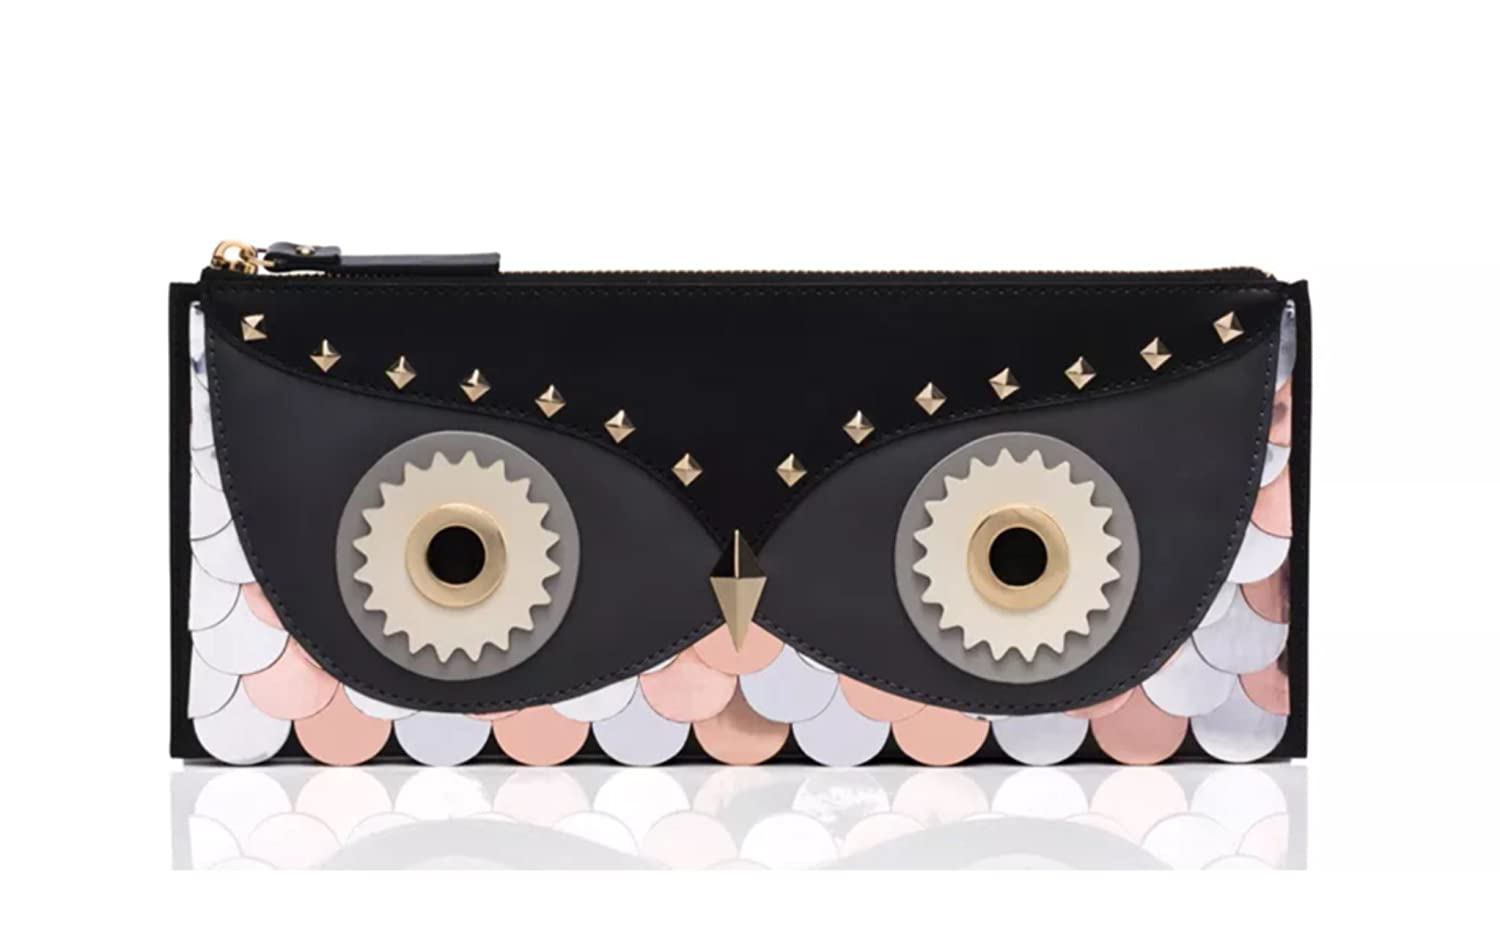 Kate Spade New York Wise Owl Clutch, Black